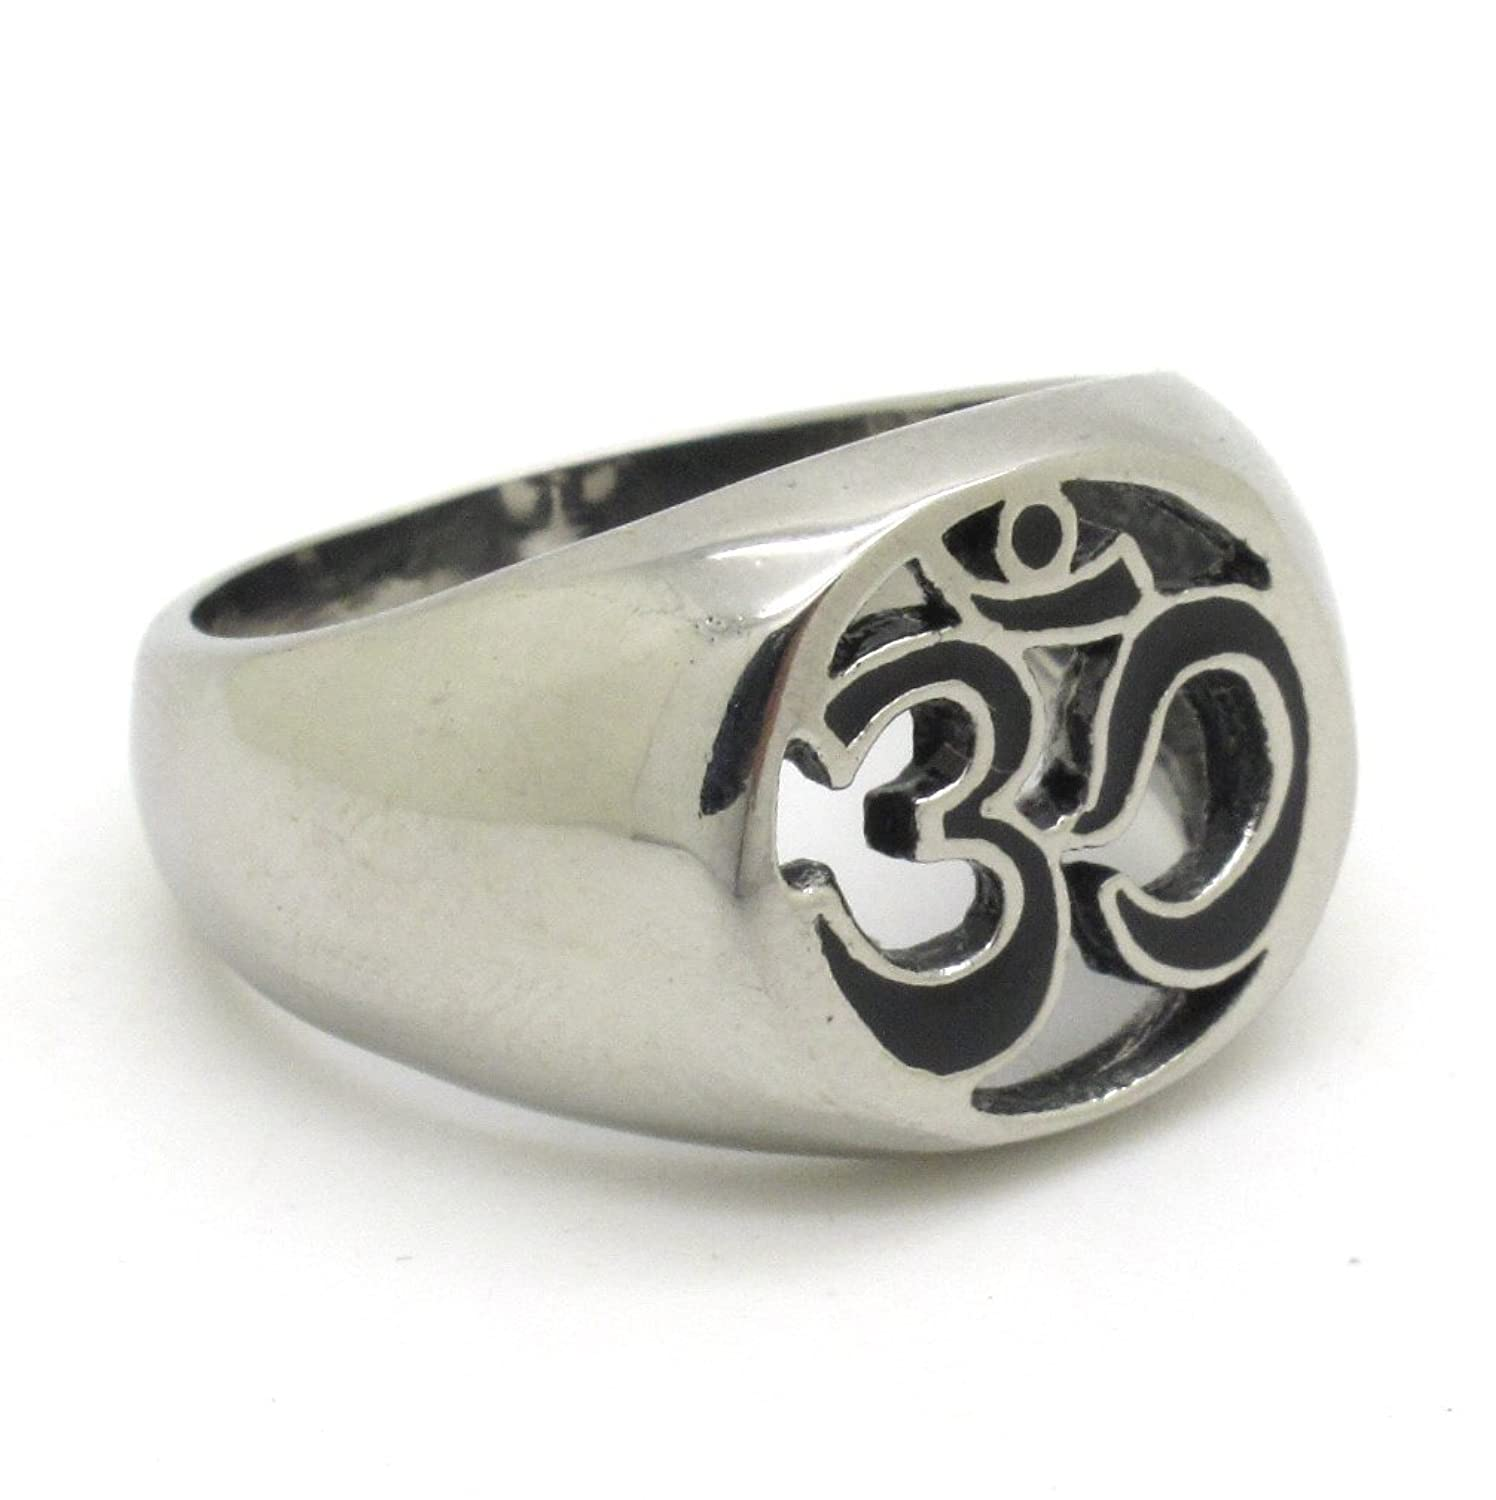 power mizpah com jewelry symbolic rings of inspirational